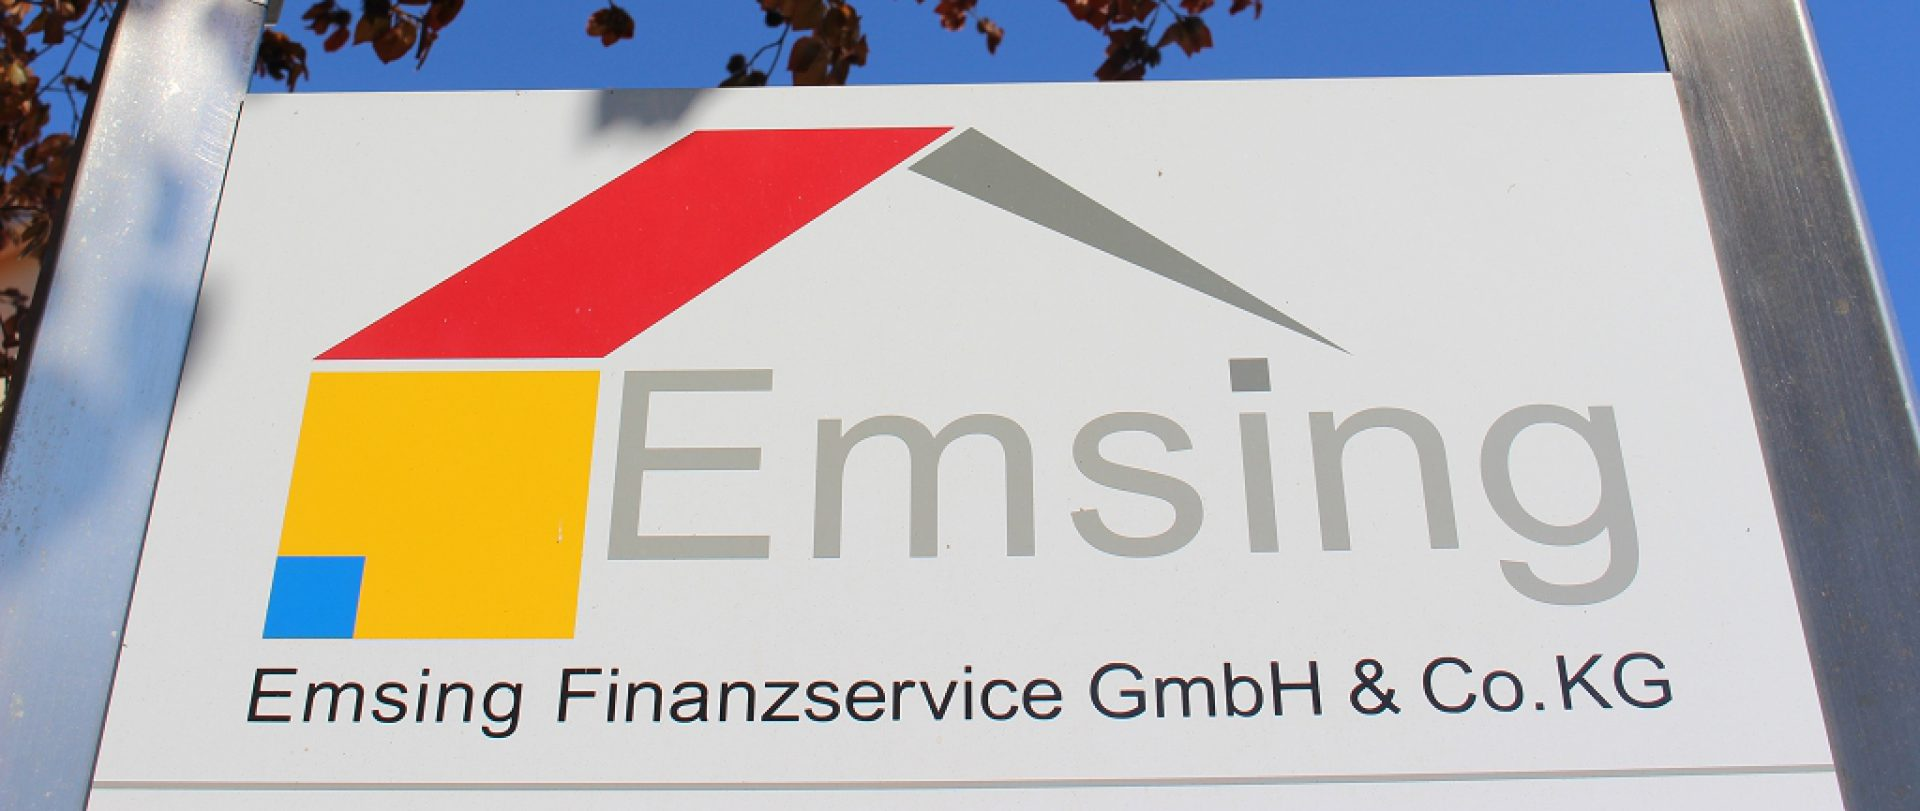 Emsing Finanzservice